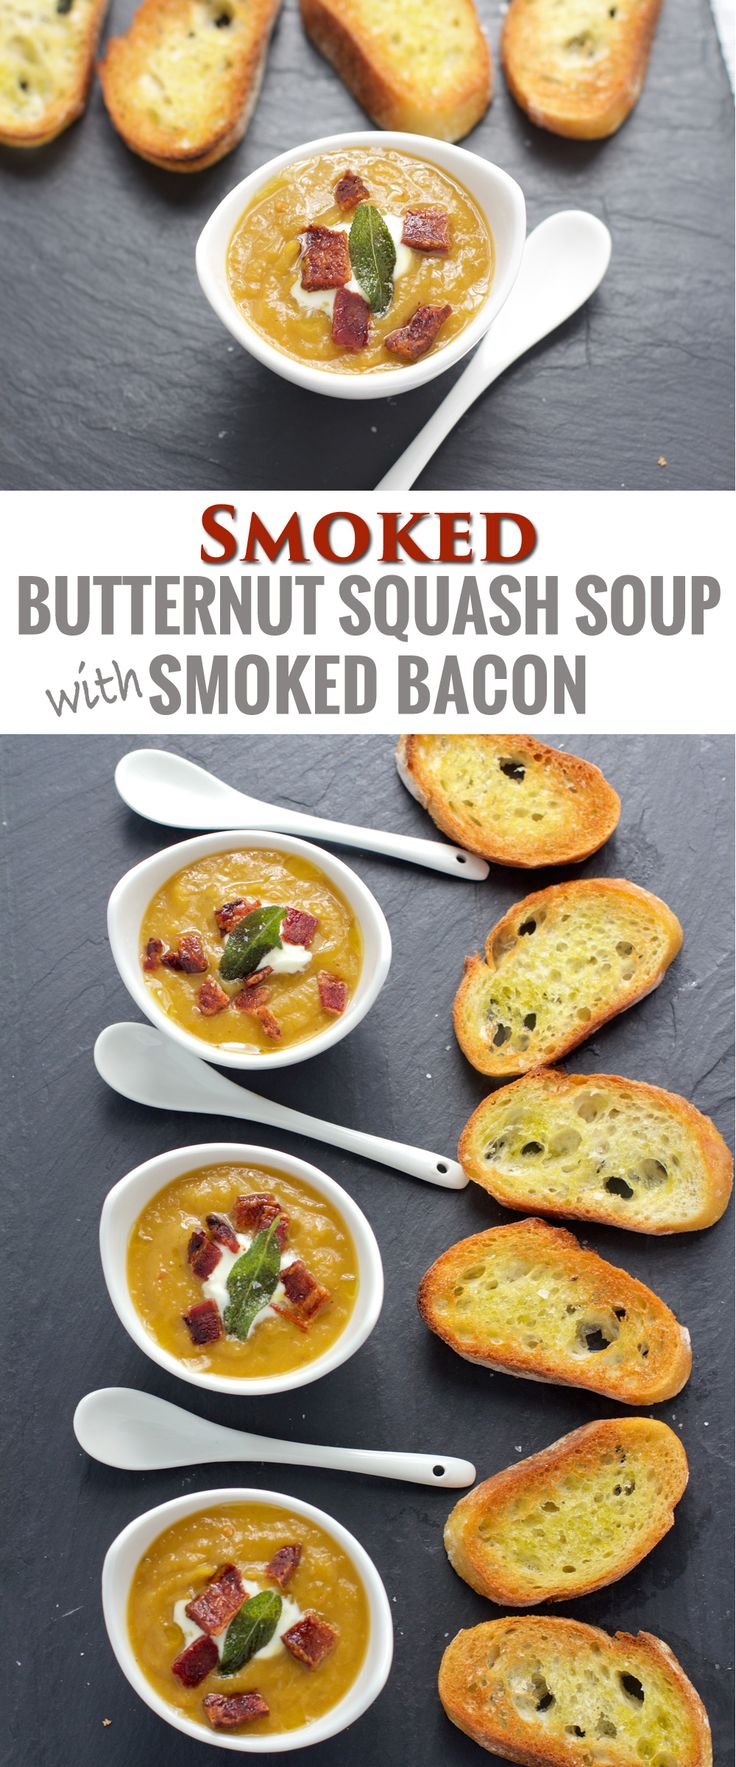 Smoked Butternut Squash Soup with Smoked Bacon | Recipe